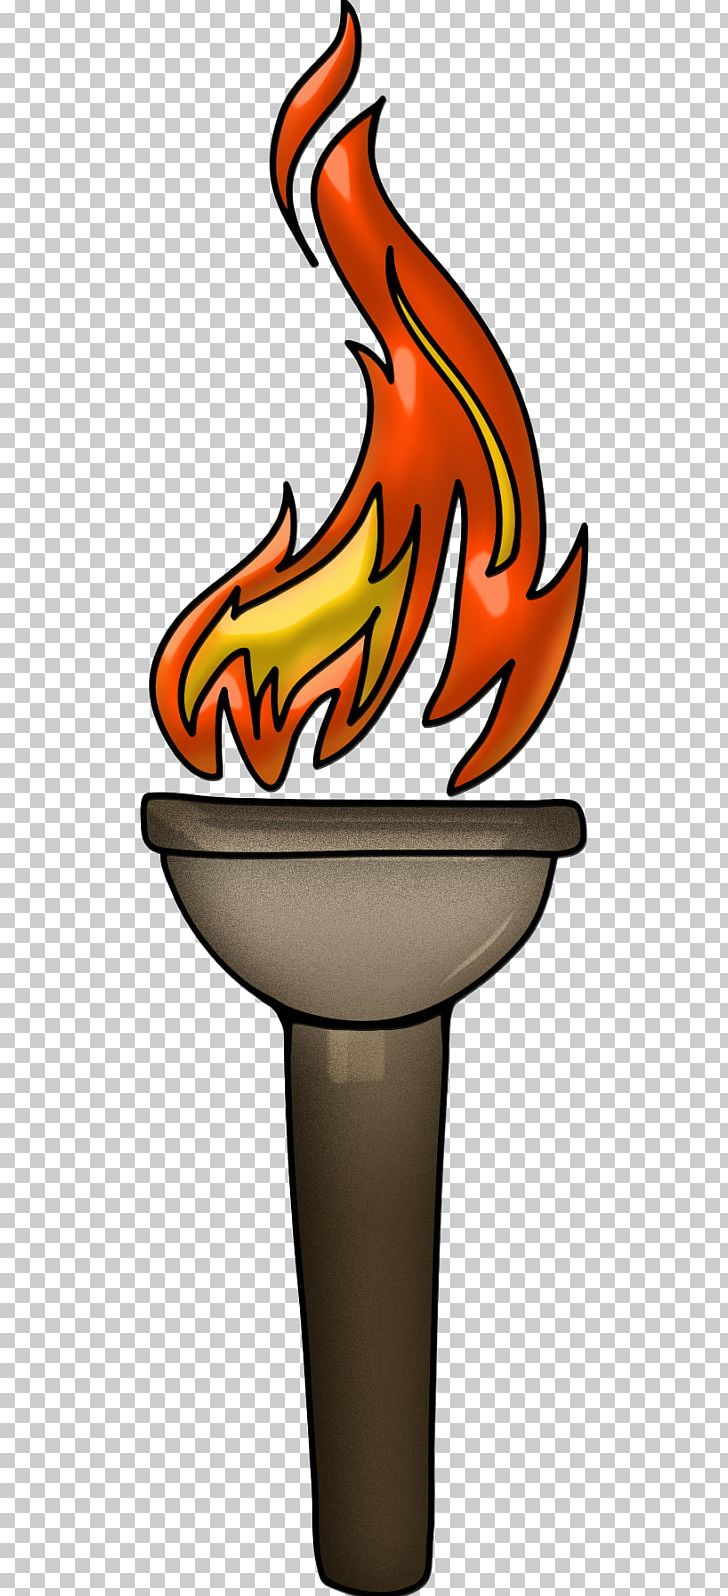 hight resolution of olympic games 2018 winter olympics torch relay png clipart 2018 winter olympics 2018 winter olympics torch